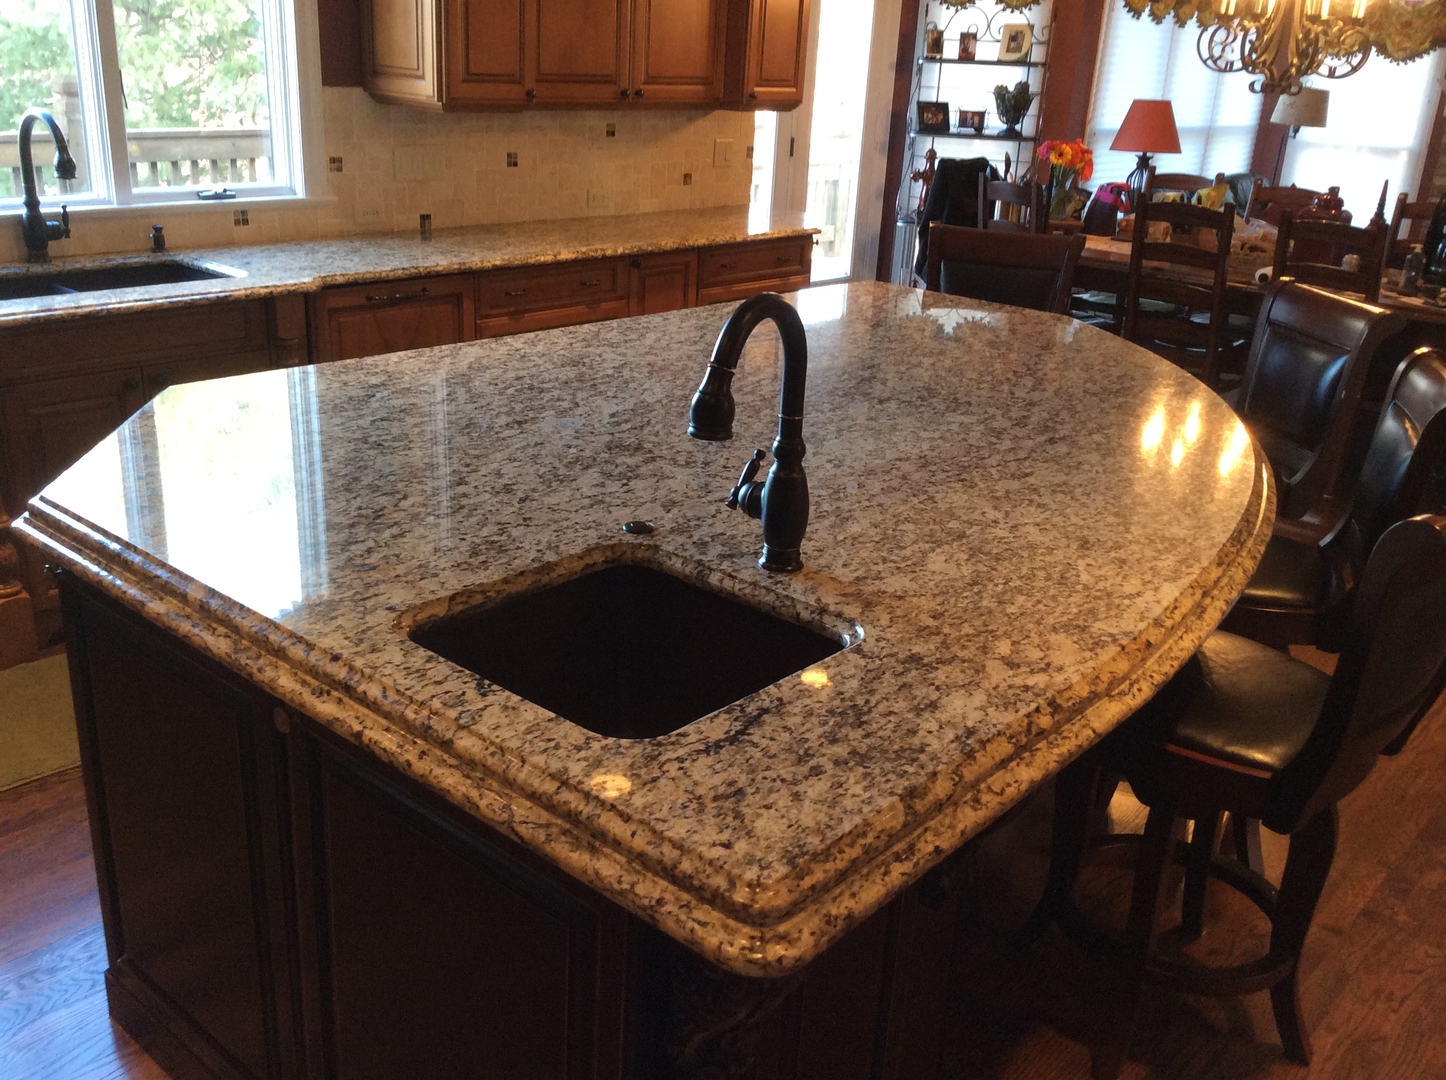 mokena fabrication a alloworigin orland providing surface installation solutions pictures il countertops quartz disposition company is accesskeyid in illinois granite and located countertop park